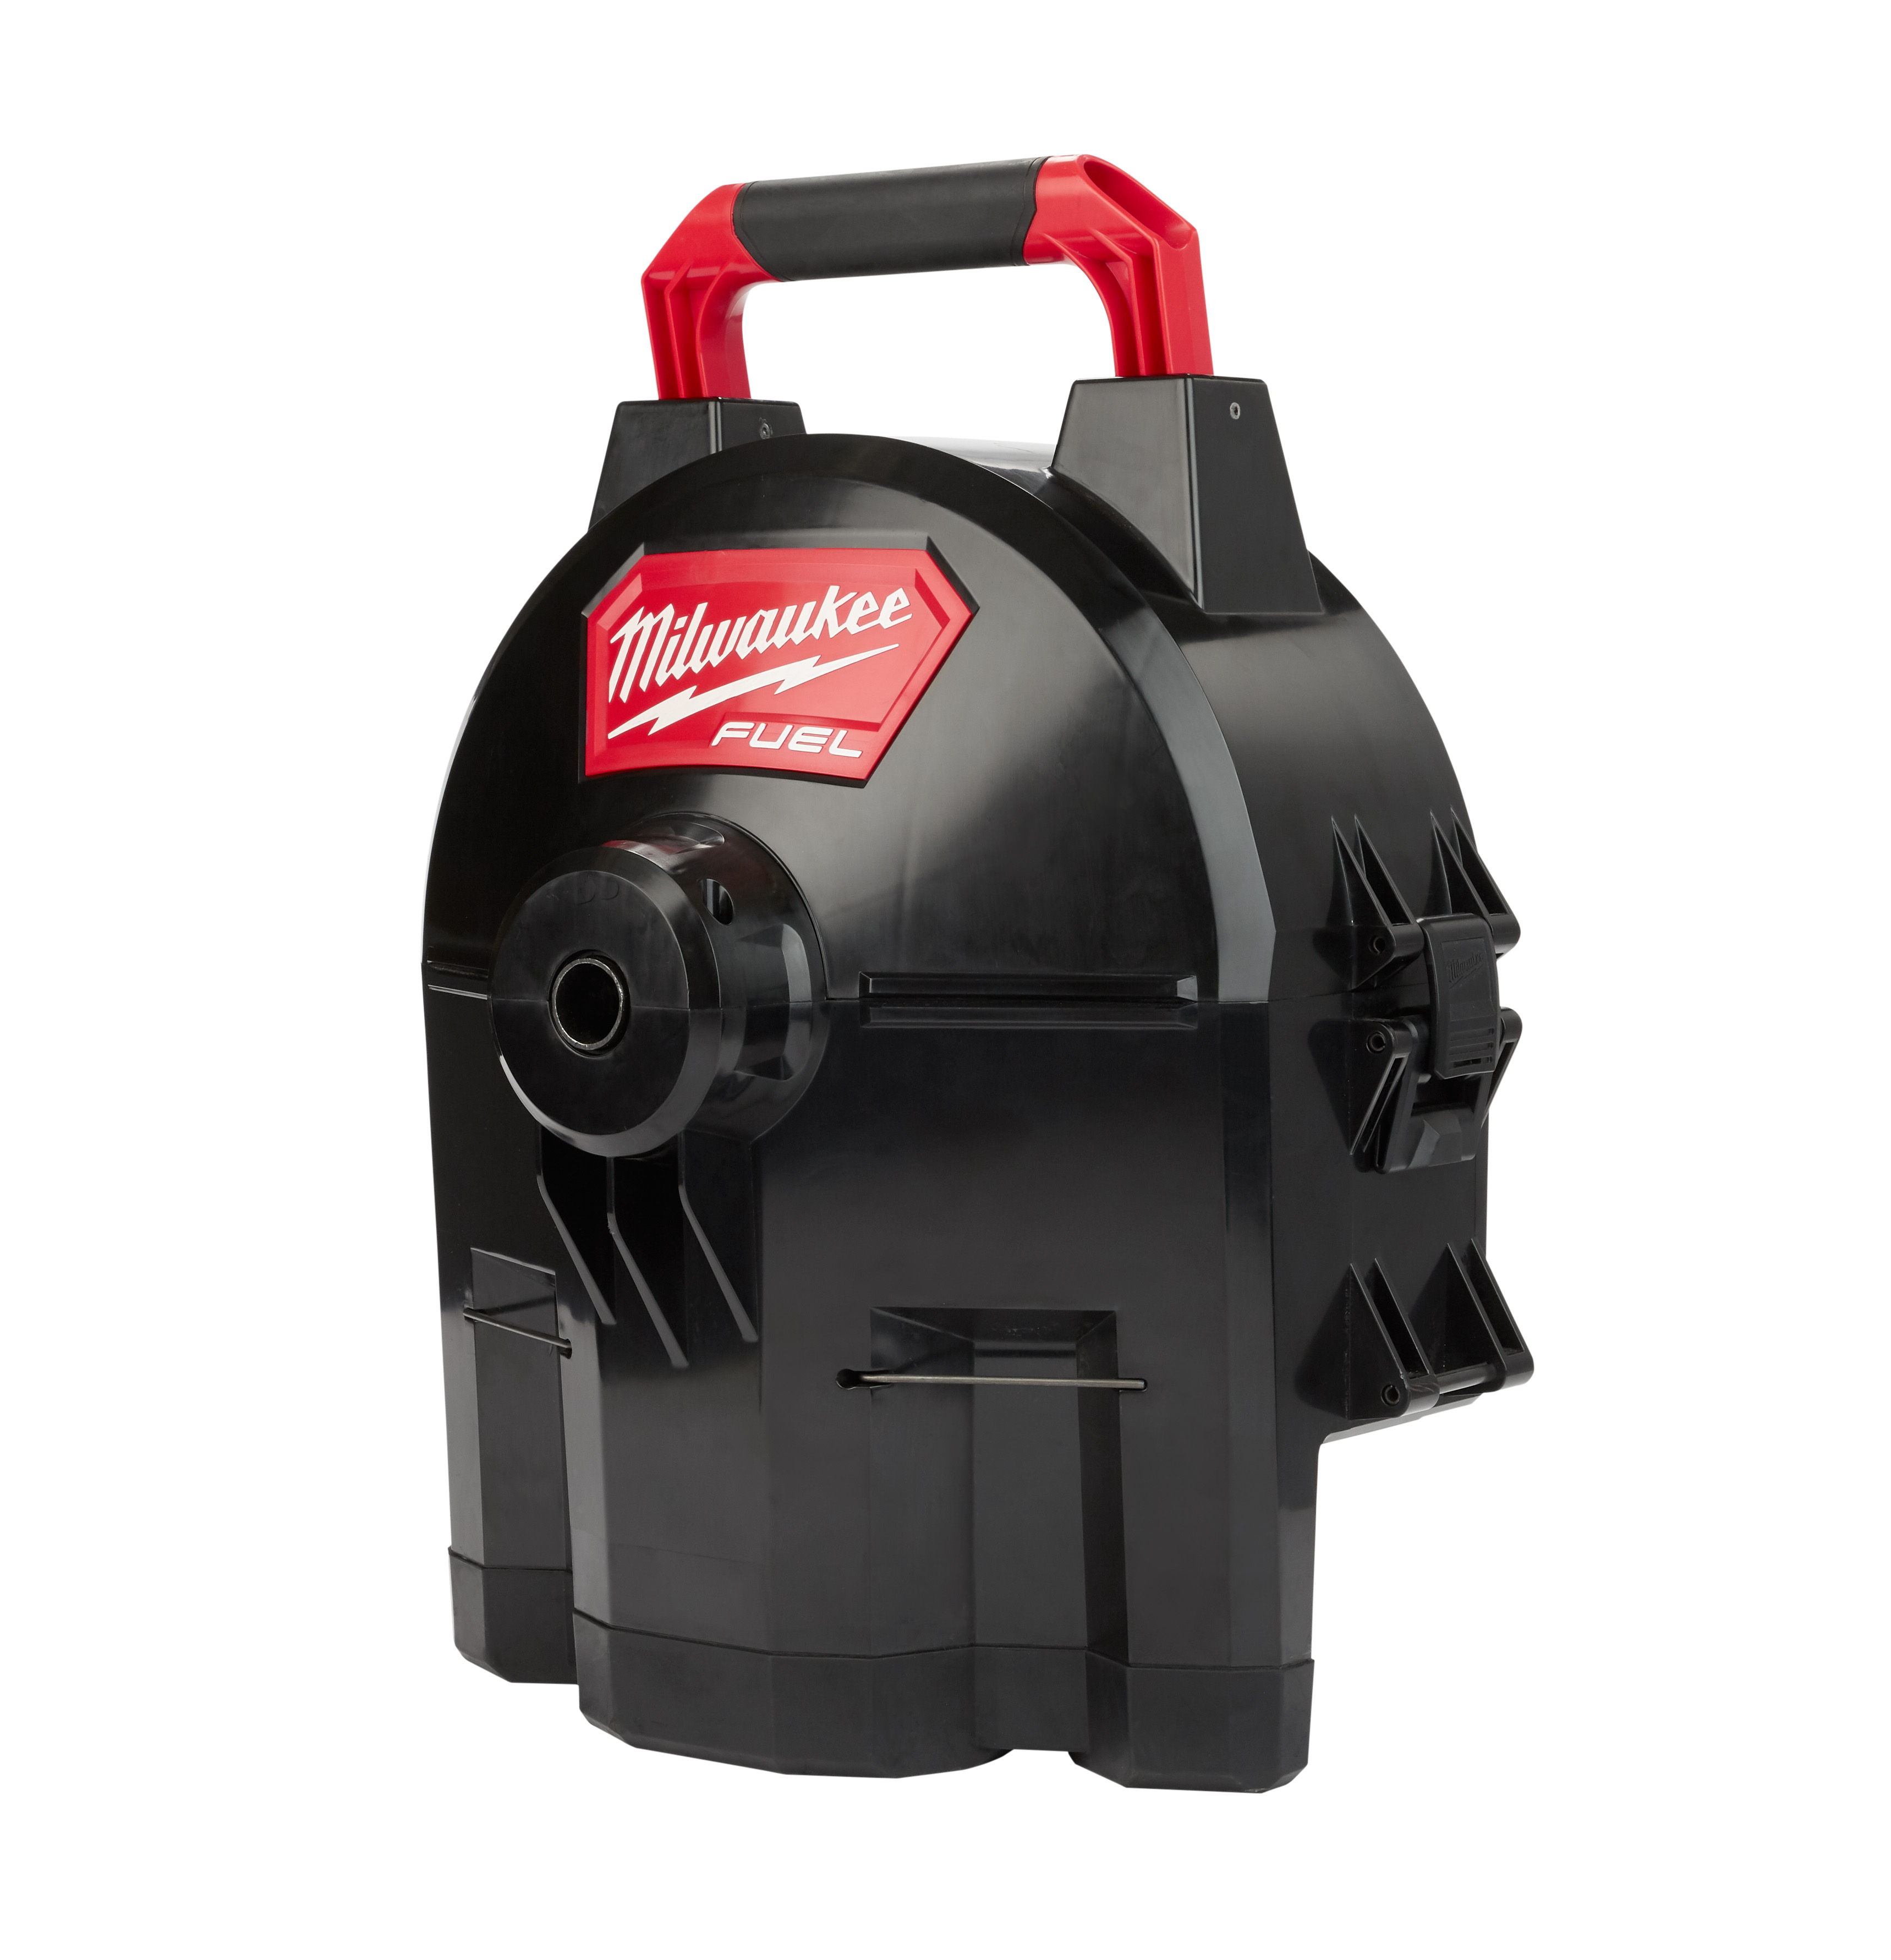 Milwaukee® M18 FUEL™ 47-53-2775 Switch Pack Drum, 1/2 to 5/8 in Drain Line, 100 ft Max Run, 18 VAC, HDPE Drum Housing